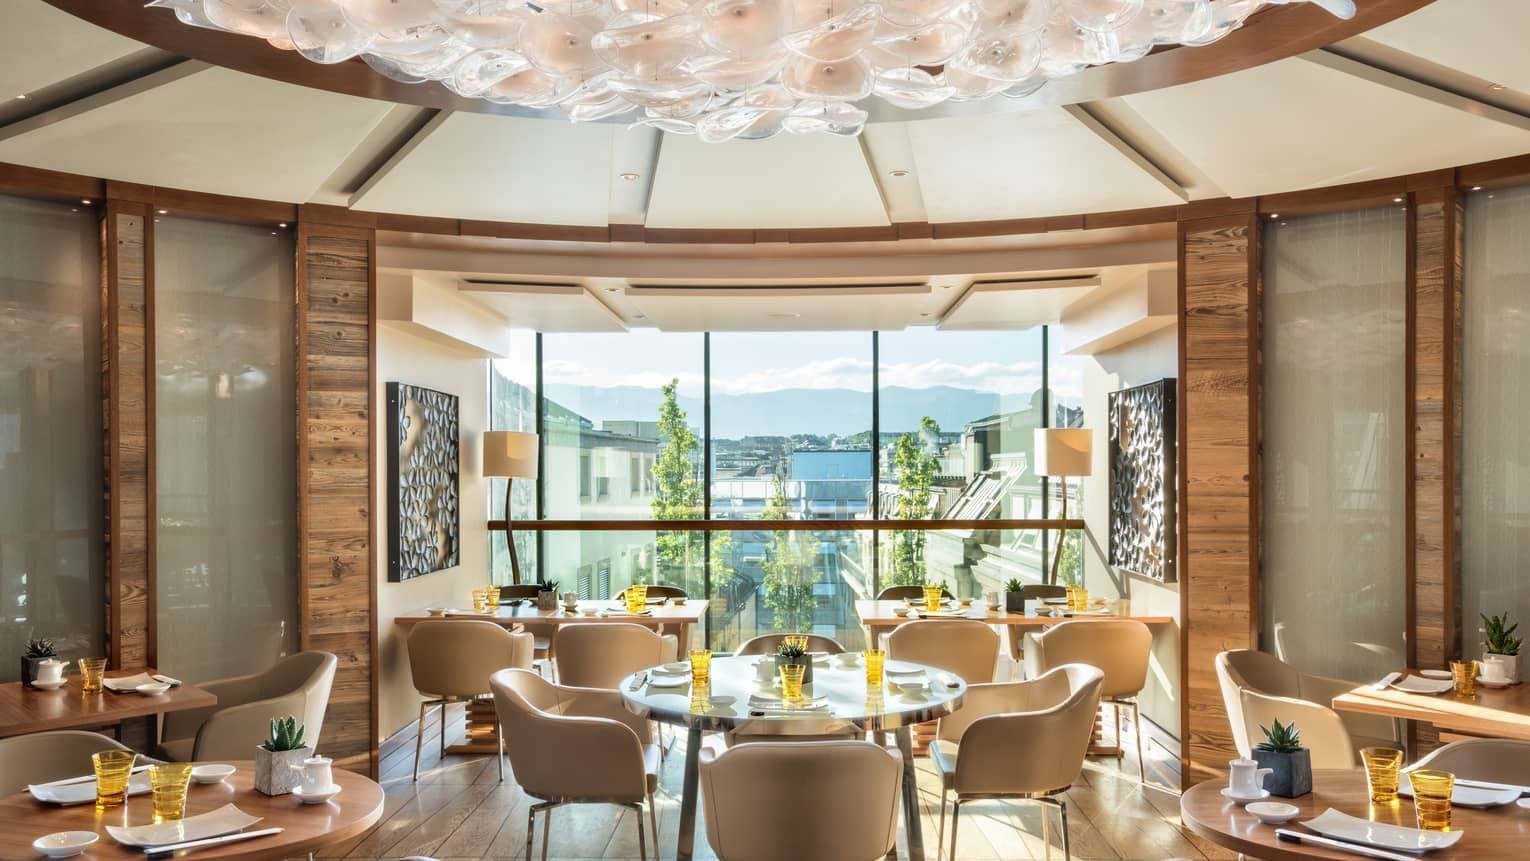 Sunny rotunda dining room with cream-coloured chairs, round wood tables, floor-to-ceiling window